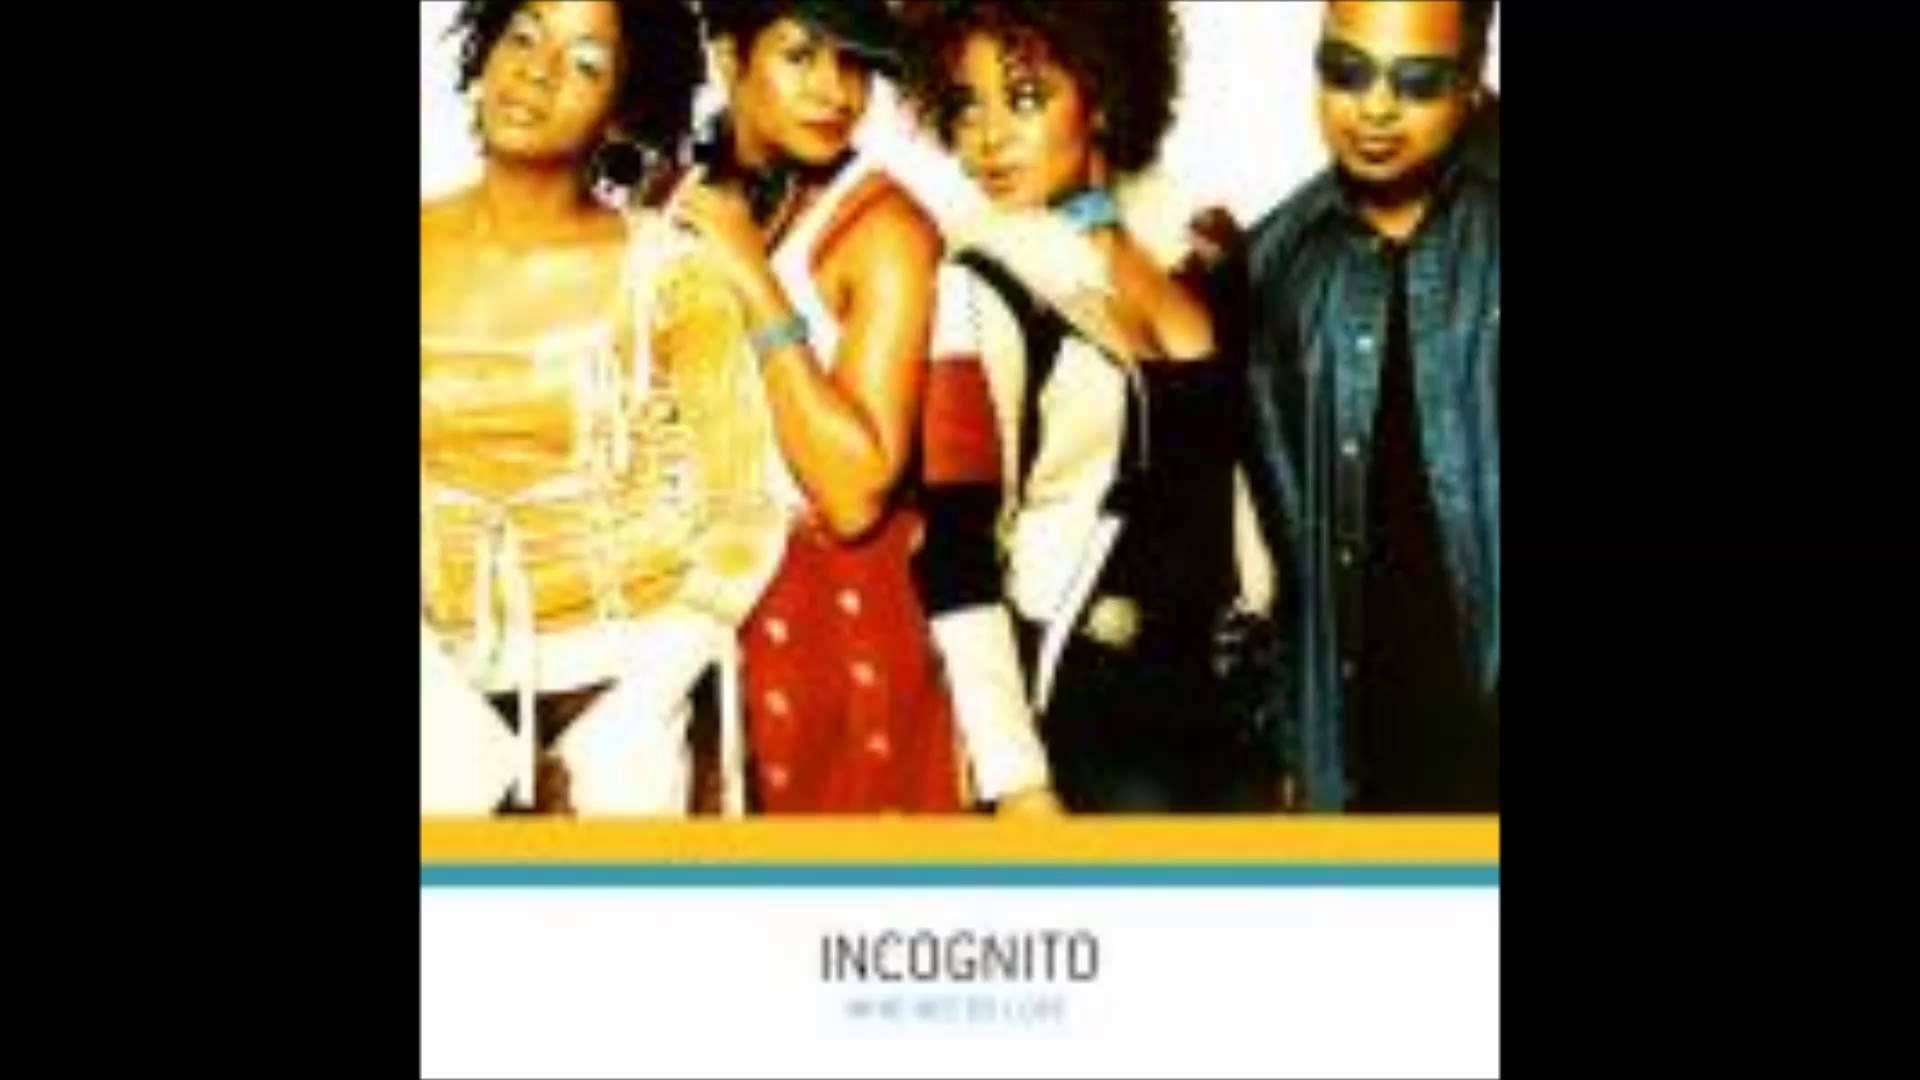 Incognito With Paul Weller One Of My Favorites Incognito Rhythm And Blues Need Love